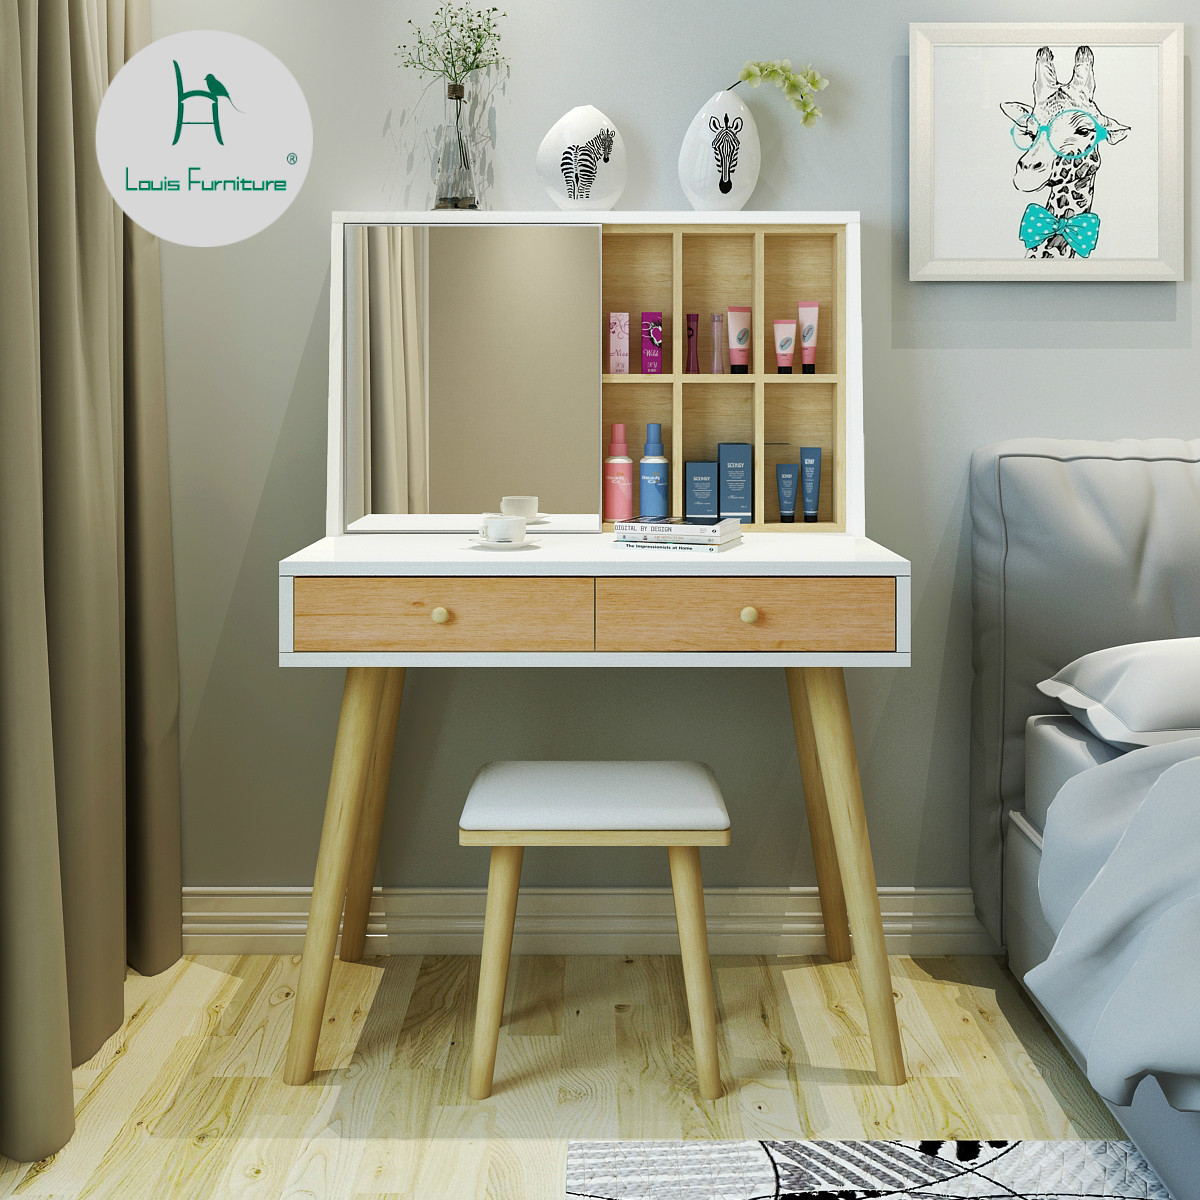 US $177.9 |Louis Fashion Dressers Simple Nordic Dressing Table Bedroom  Economy Small Apartment Mini Compact Modern Assembled Solid Wood-in  Dressers ...